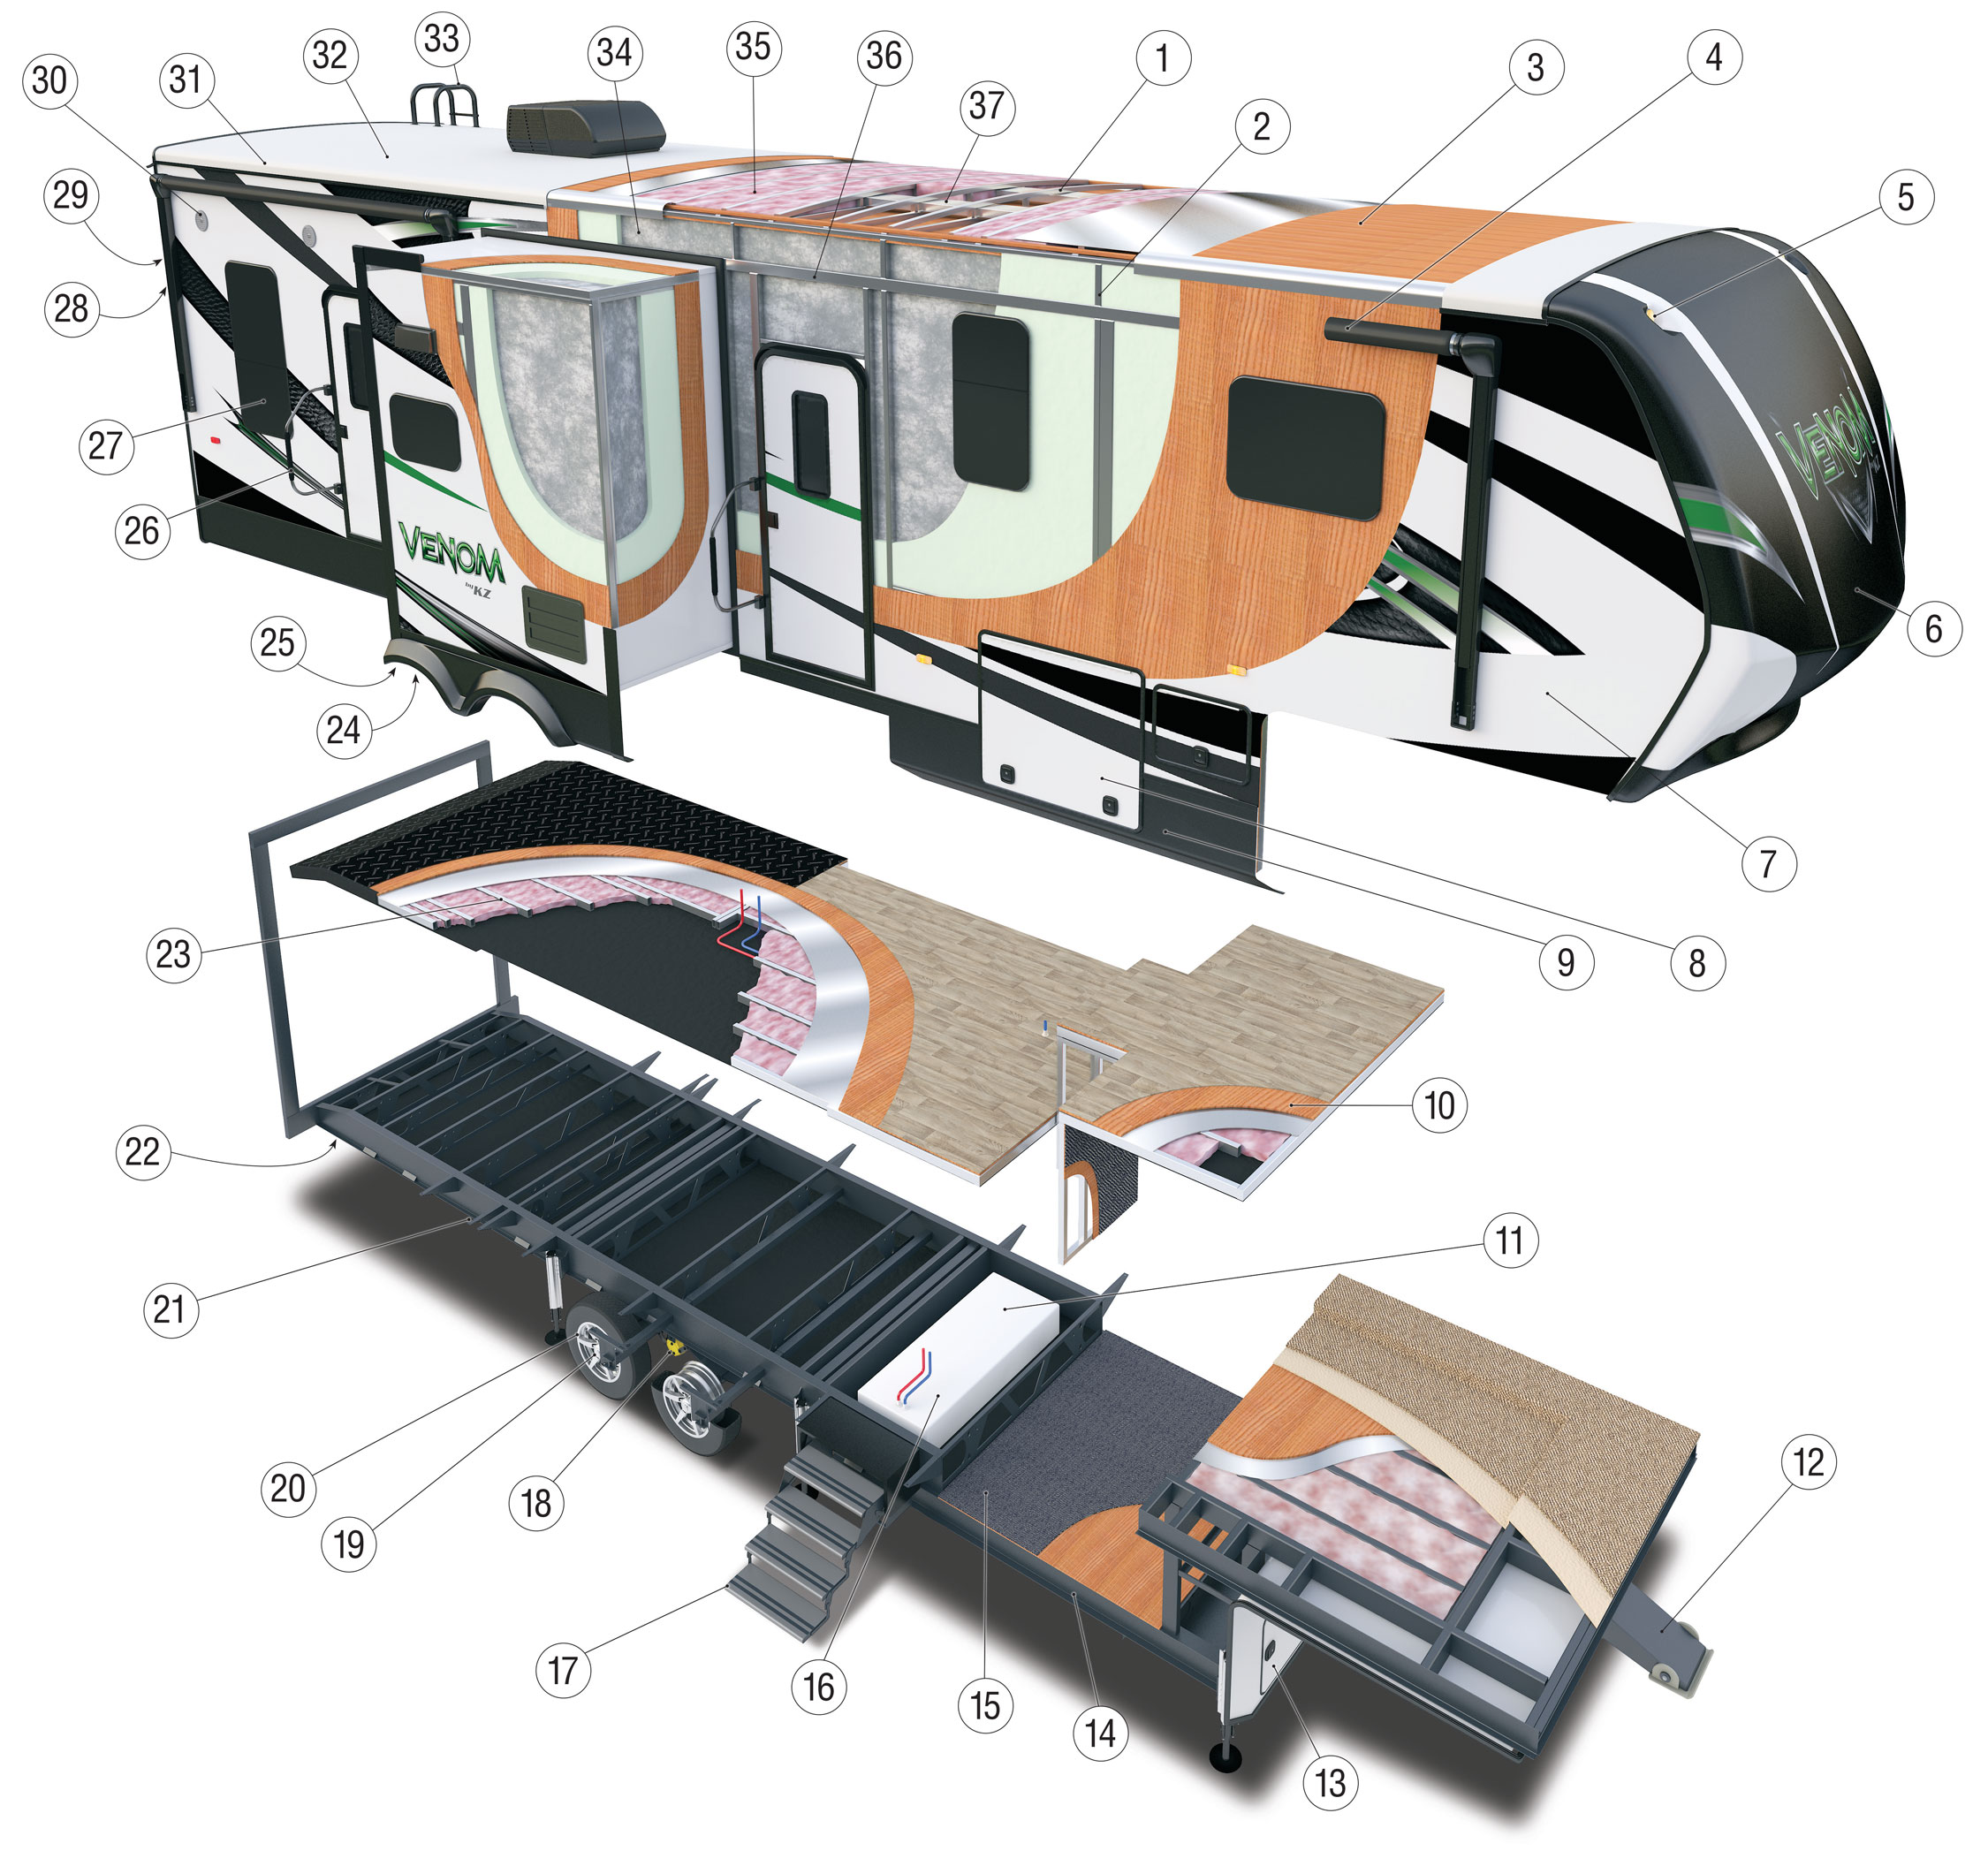 2016 Venom Luxury Fifth Wheel Toy Hauler Features